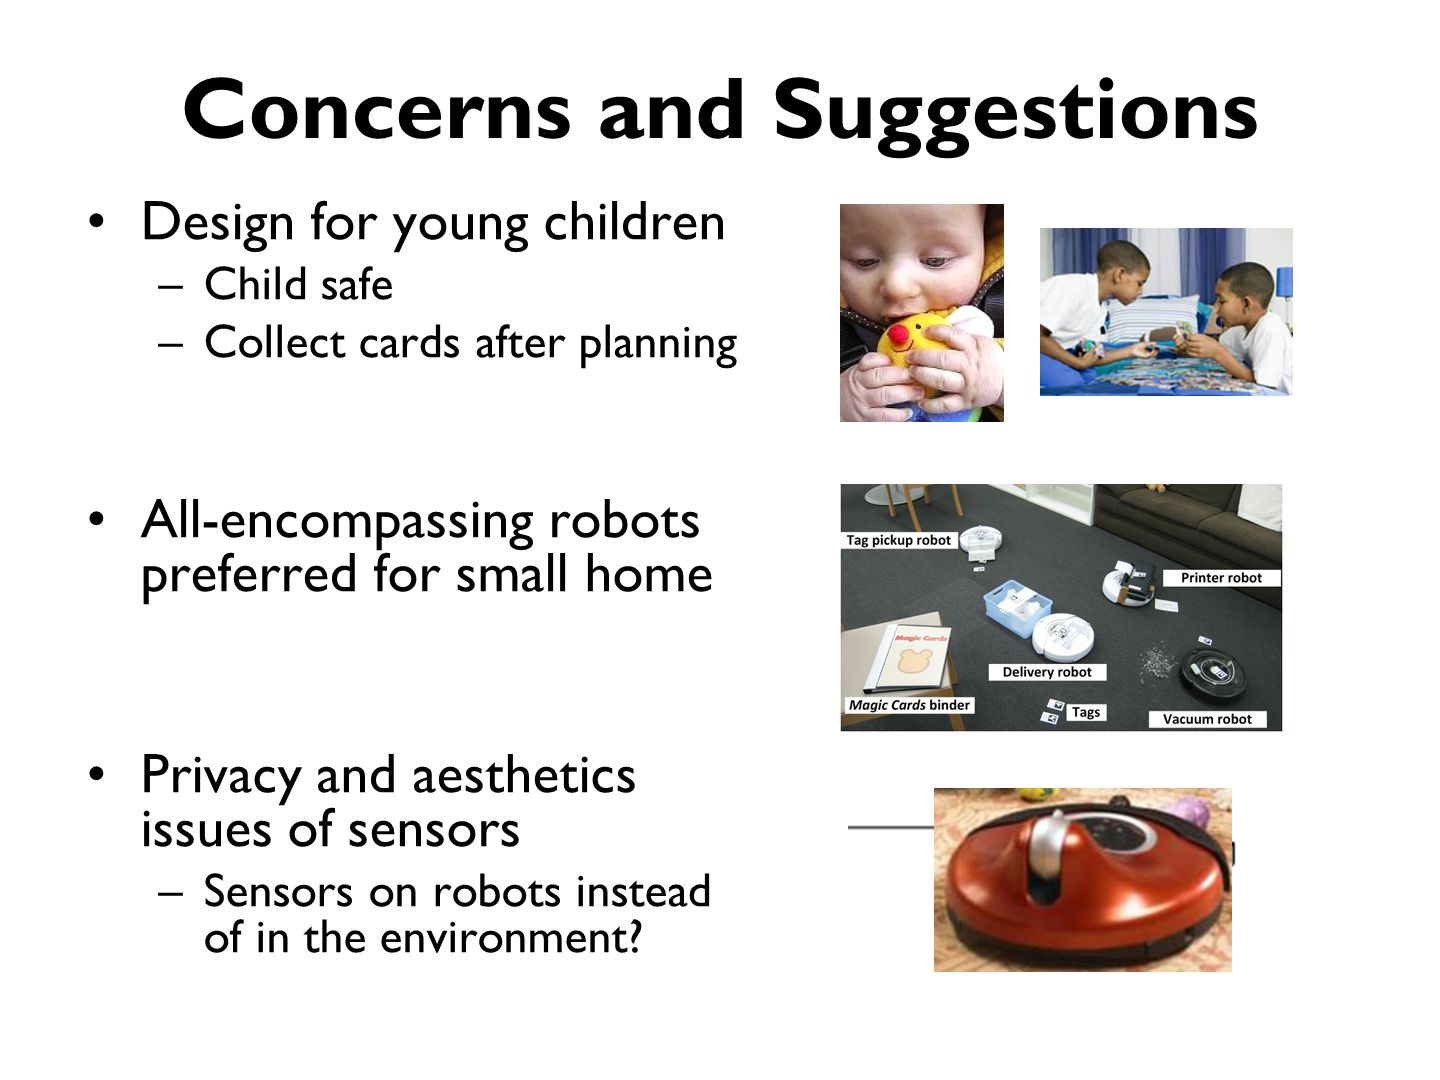 Concerns and Suggestions Design for young children –Child safe –Collect cards after planning All-encompassing robots preferred for small home Privacy and aesthetics issues of sensors –Sensors on robots instead of in the environment?